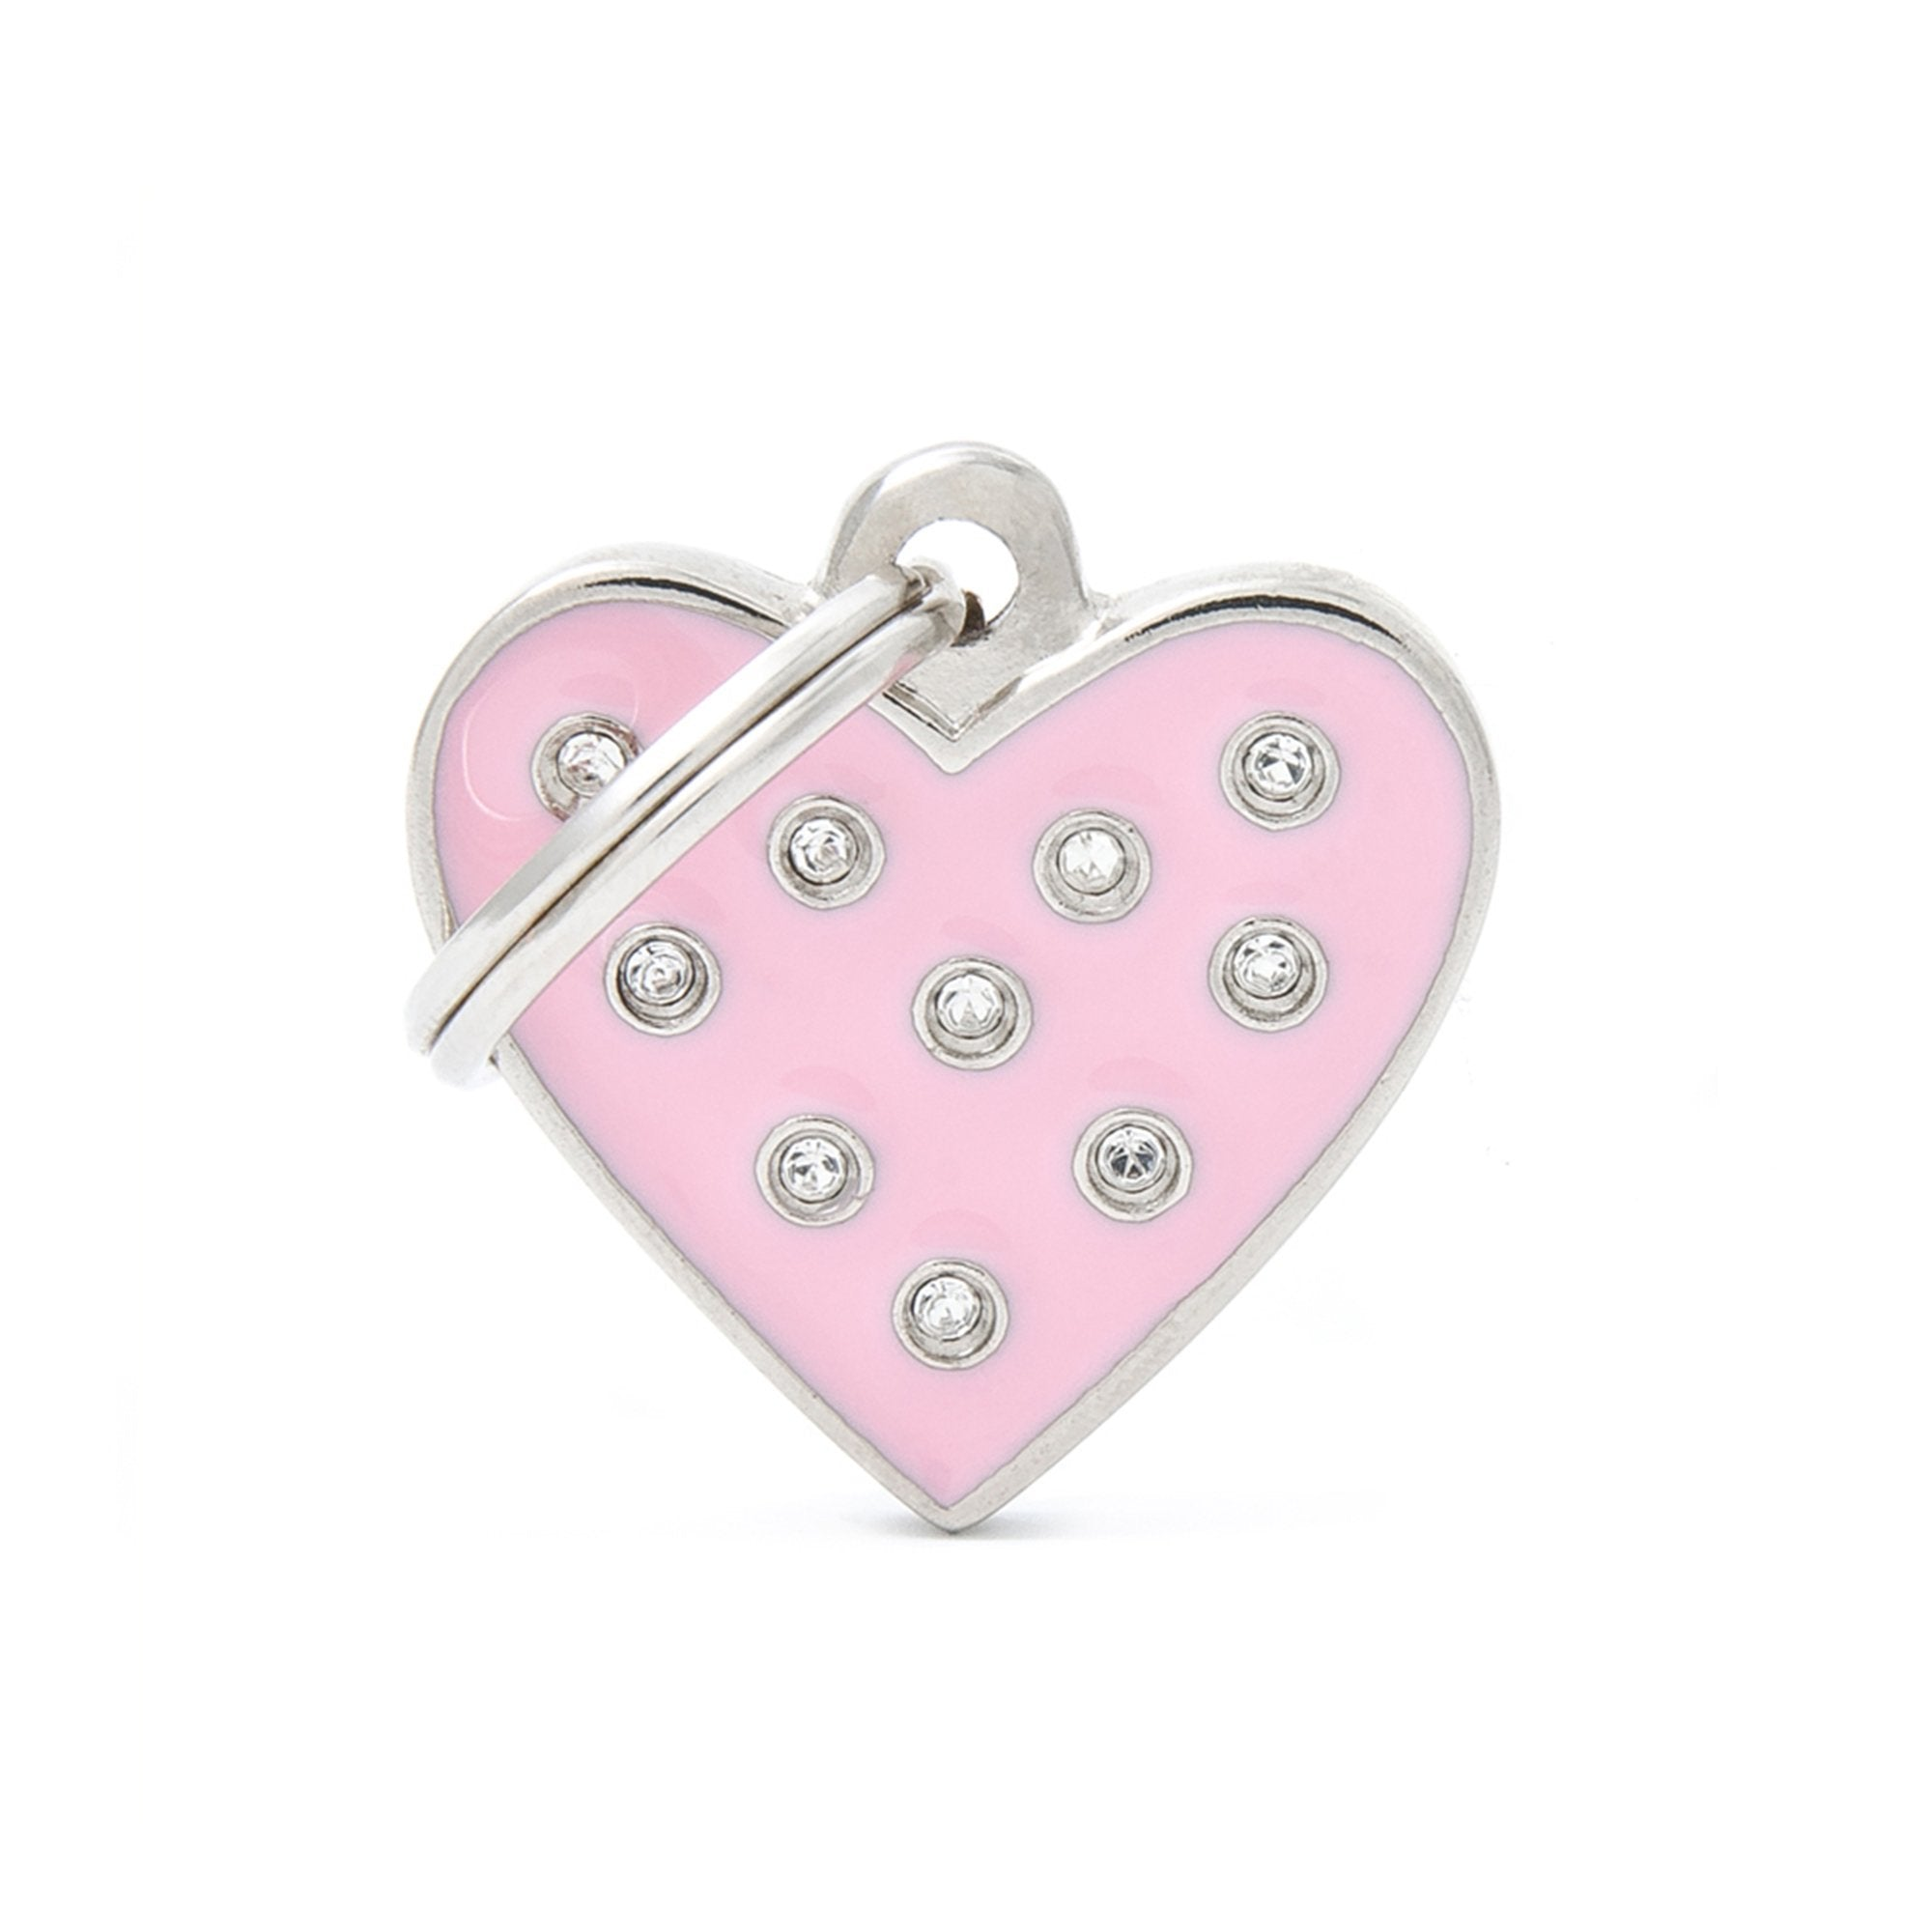 My Family Chic Pink Heart PET I.D TAG